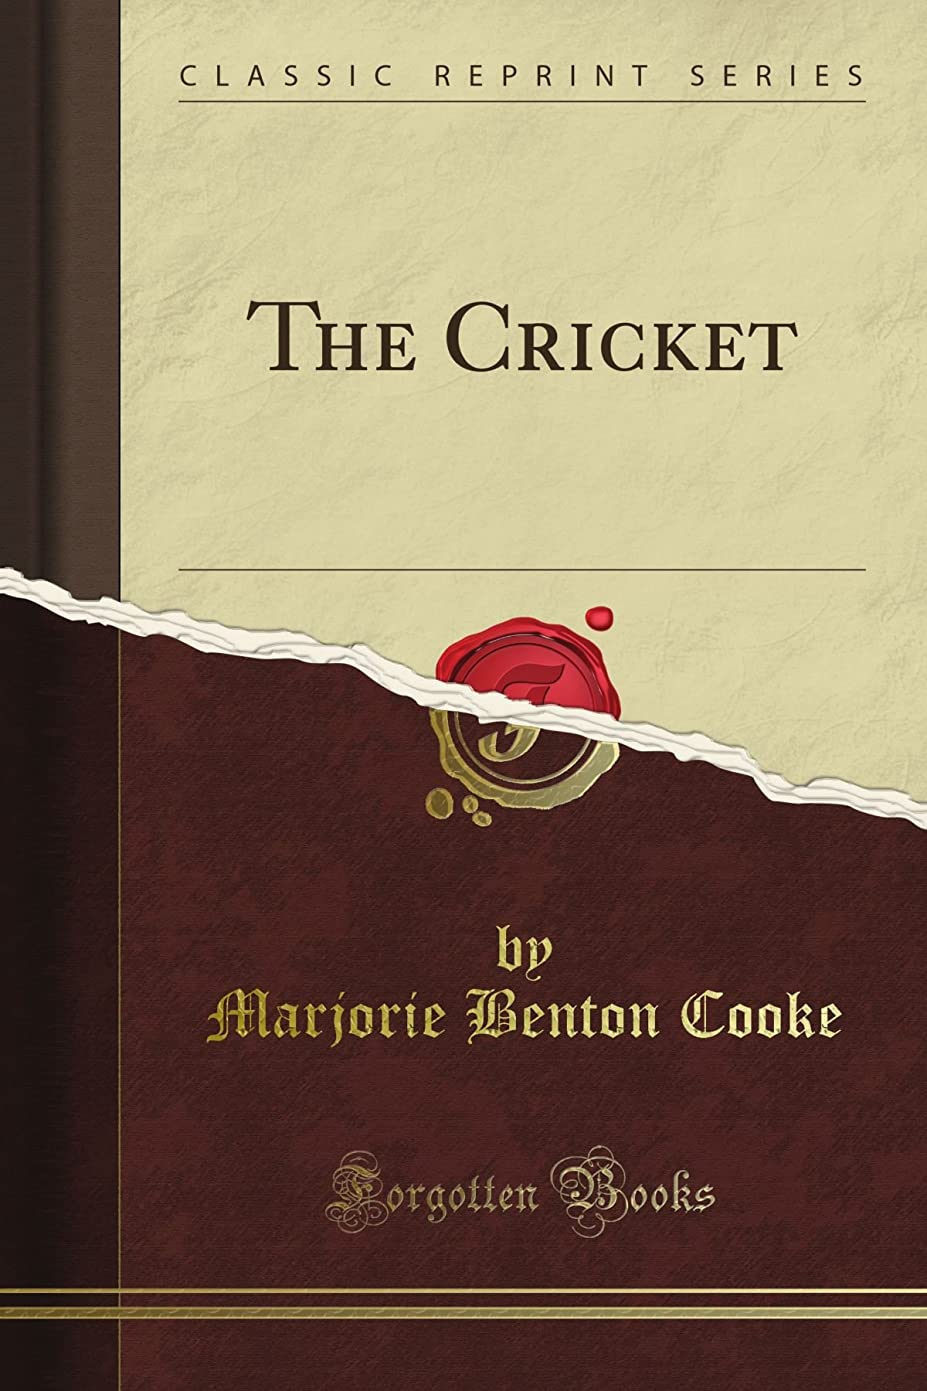 倉庫実験室ナラーバーThe Cricket (Classic Reprint)